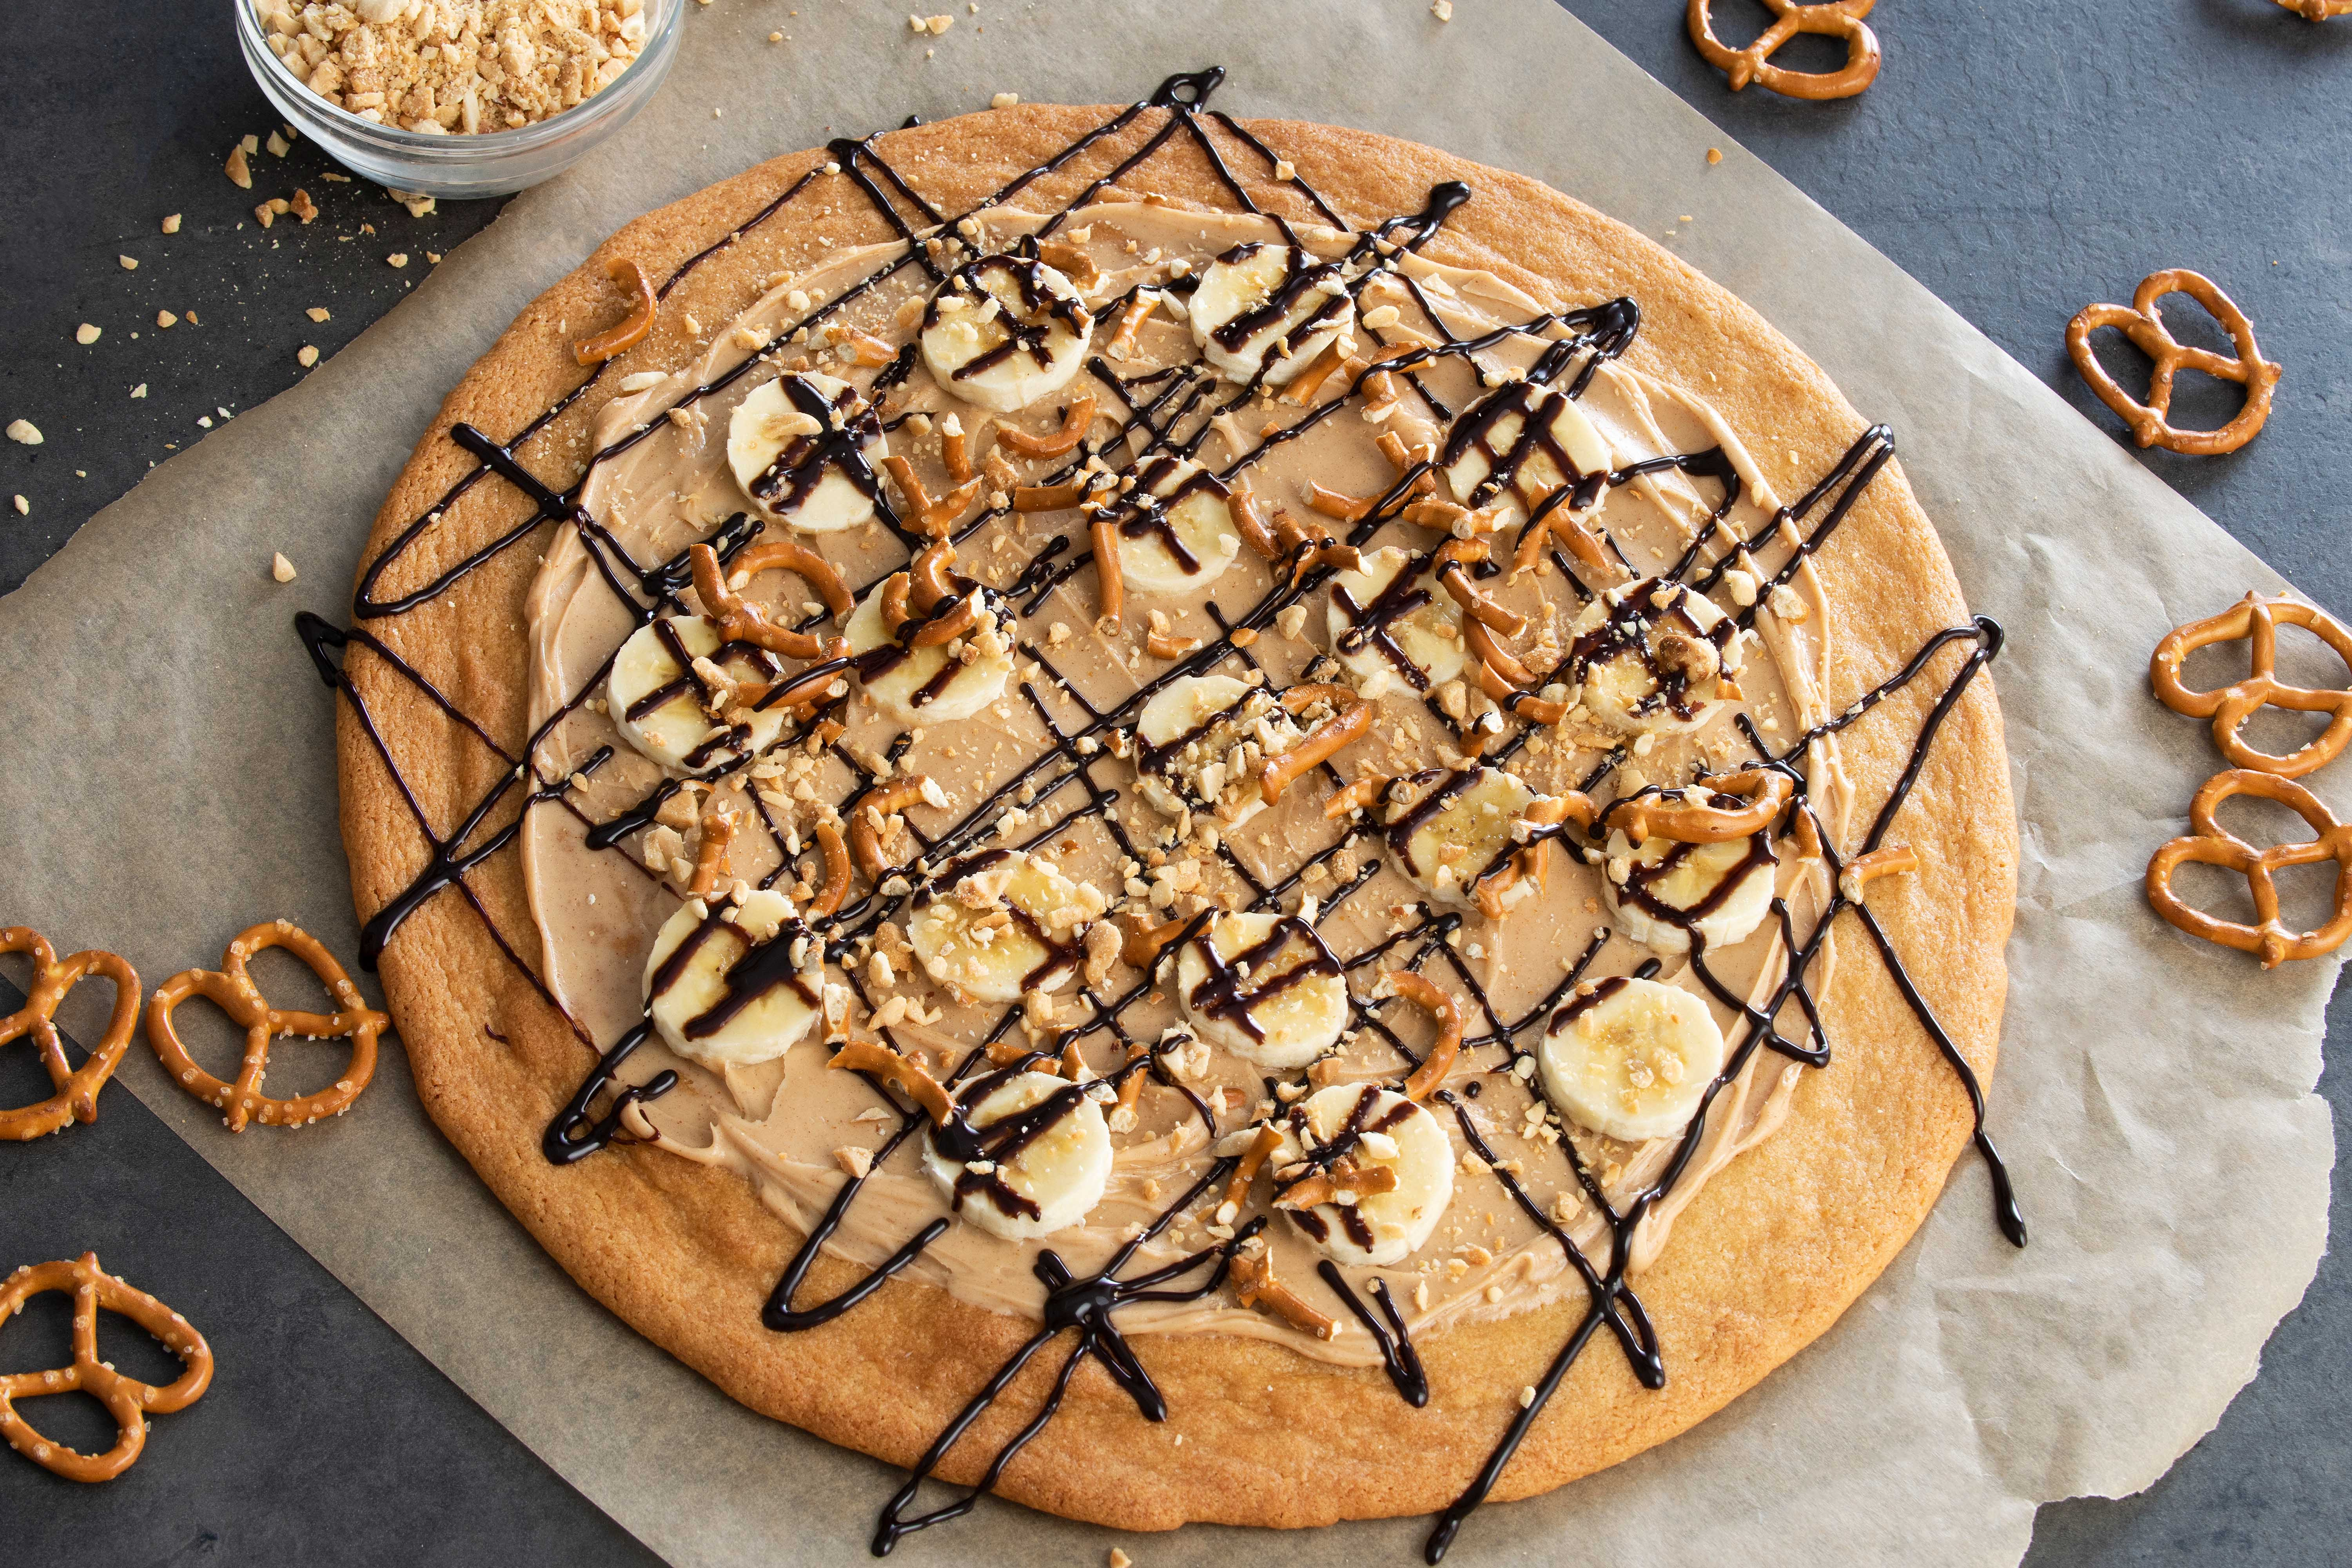 Peanut Butter Pizza